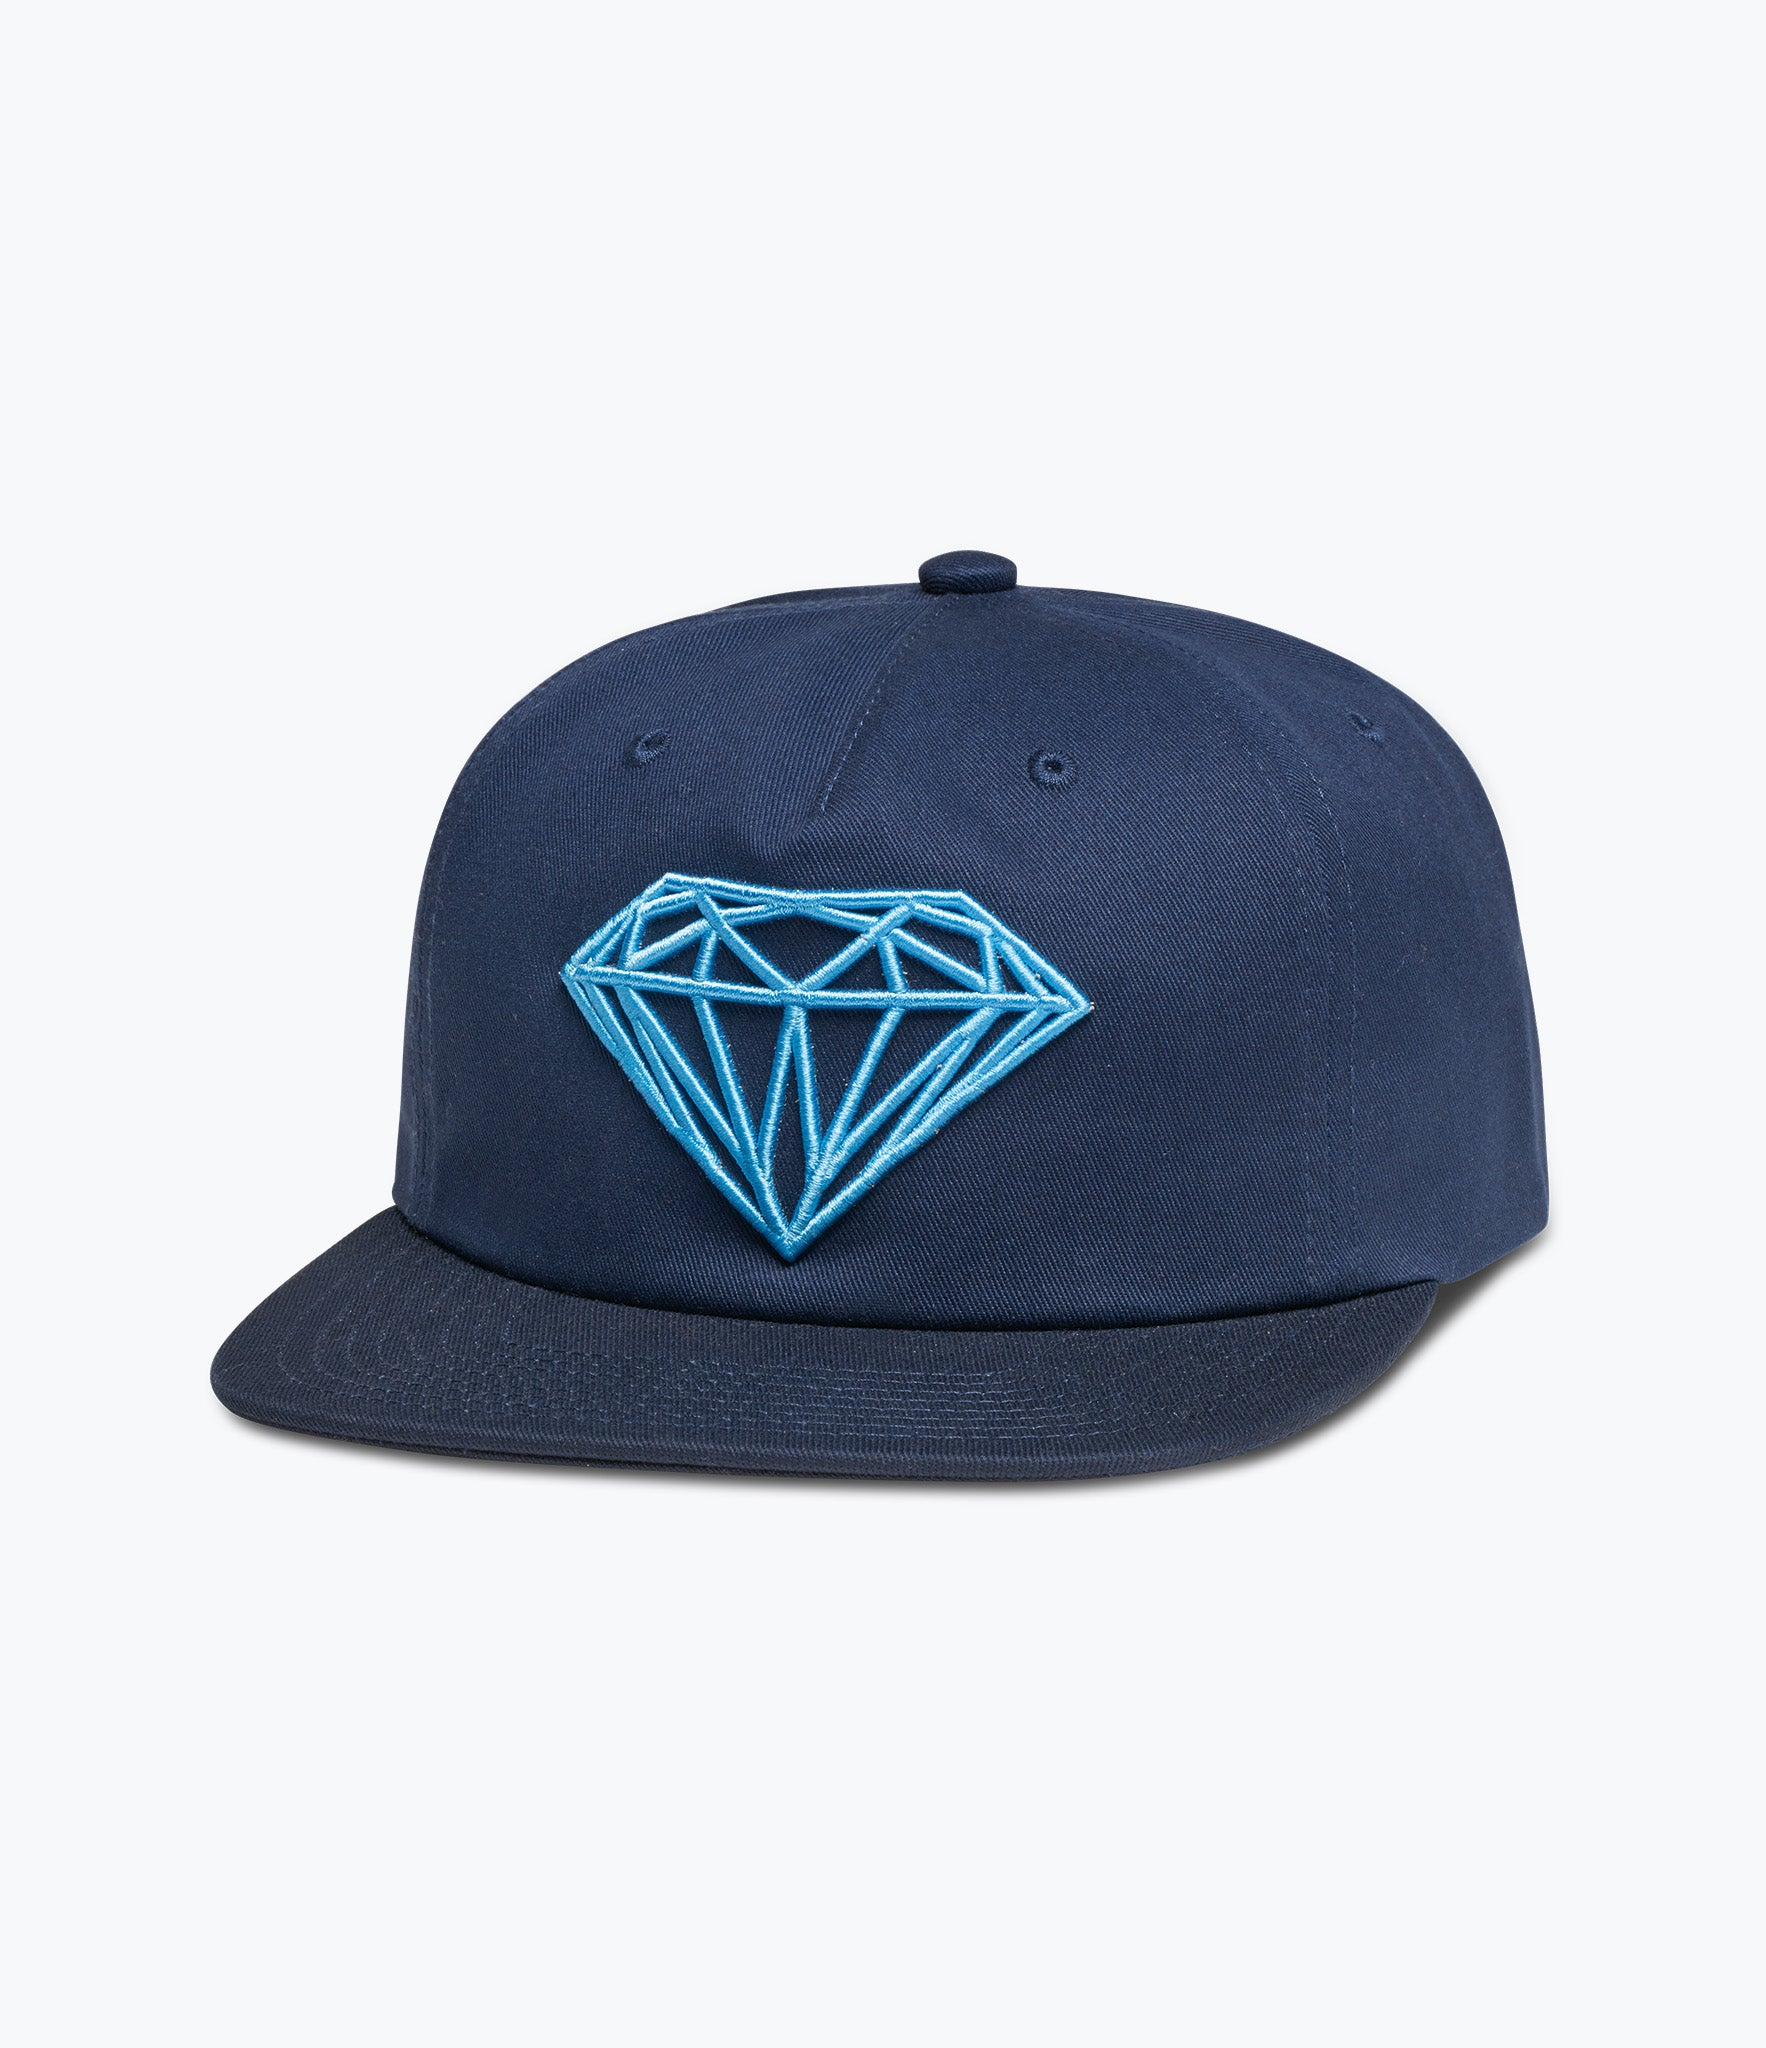 Unconstructed Snapback Cap With Script Logo - Black Diamond Supply Company z7H5MQcw